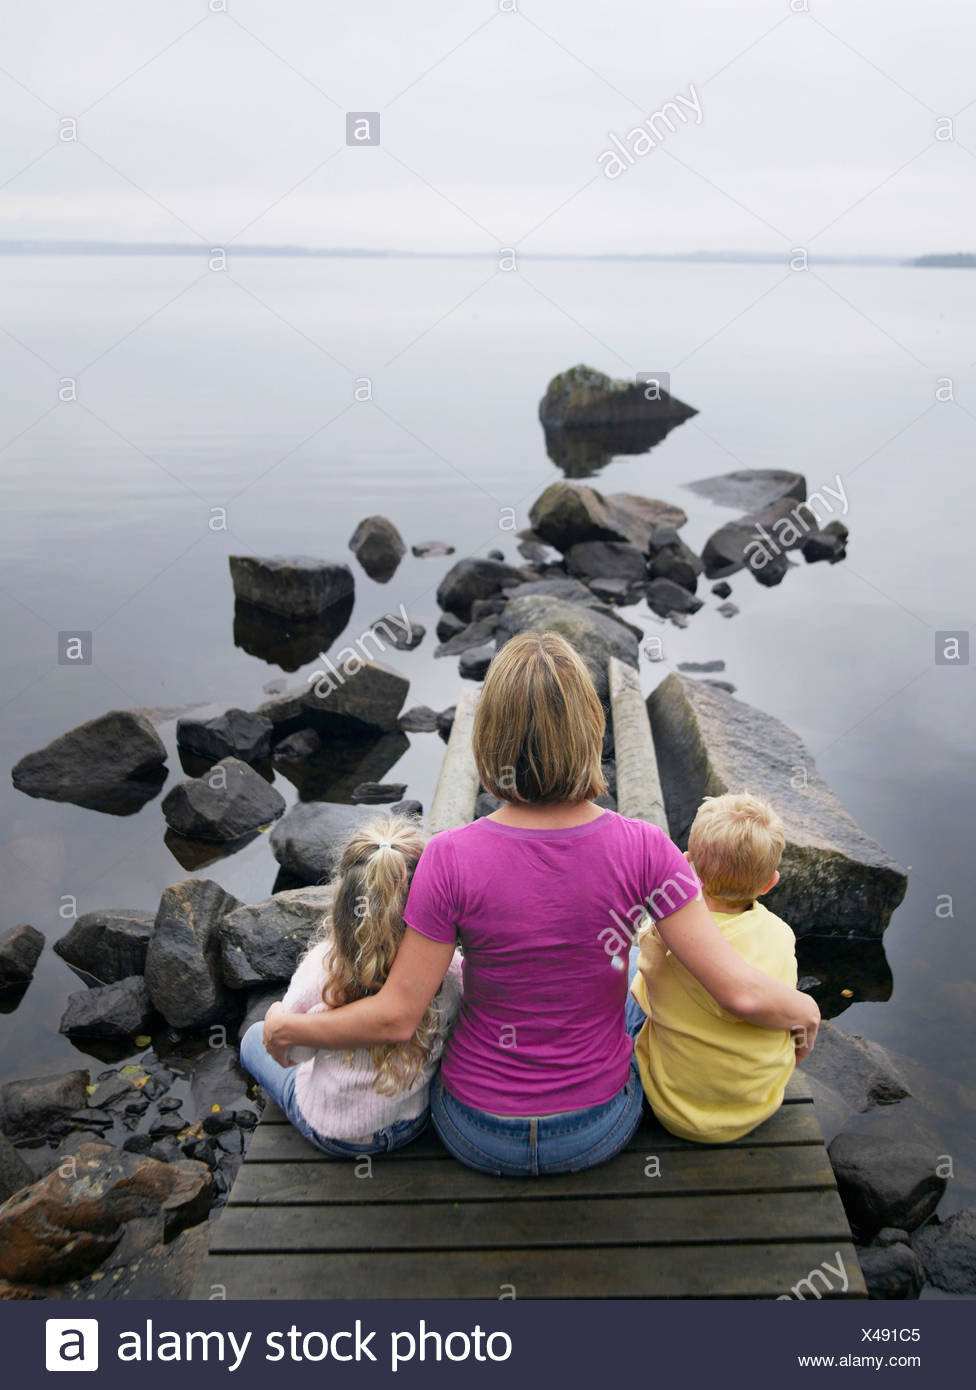 Woman with young boy and young girl sitting on a dock by a lake. Stock Photo